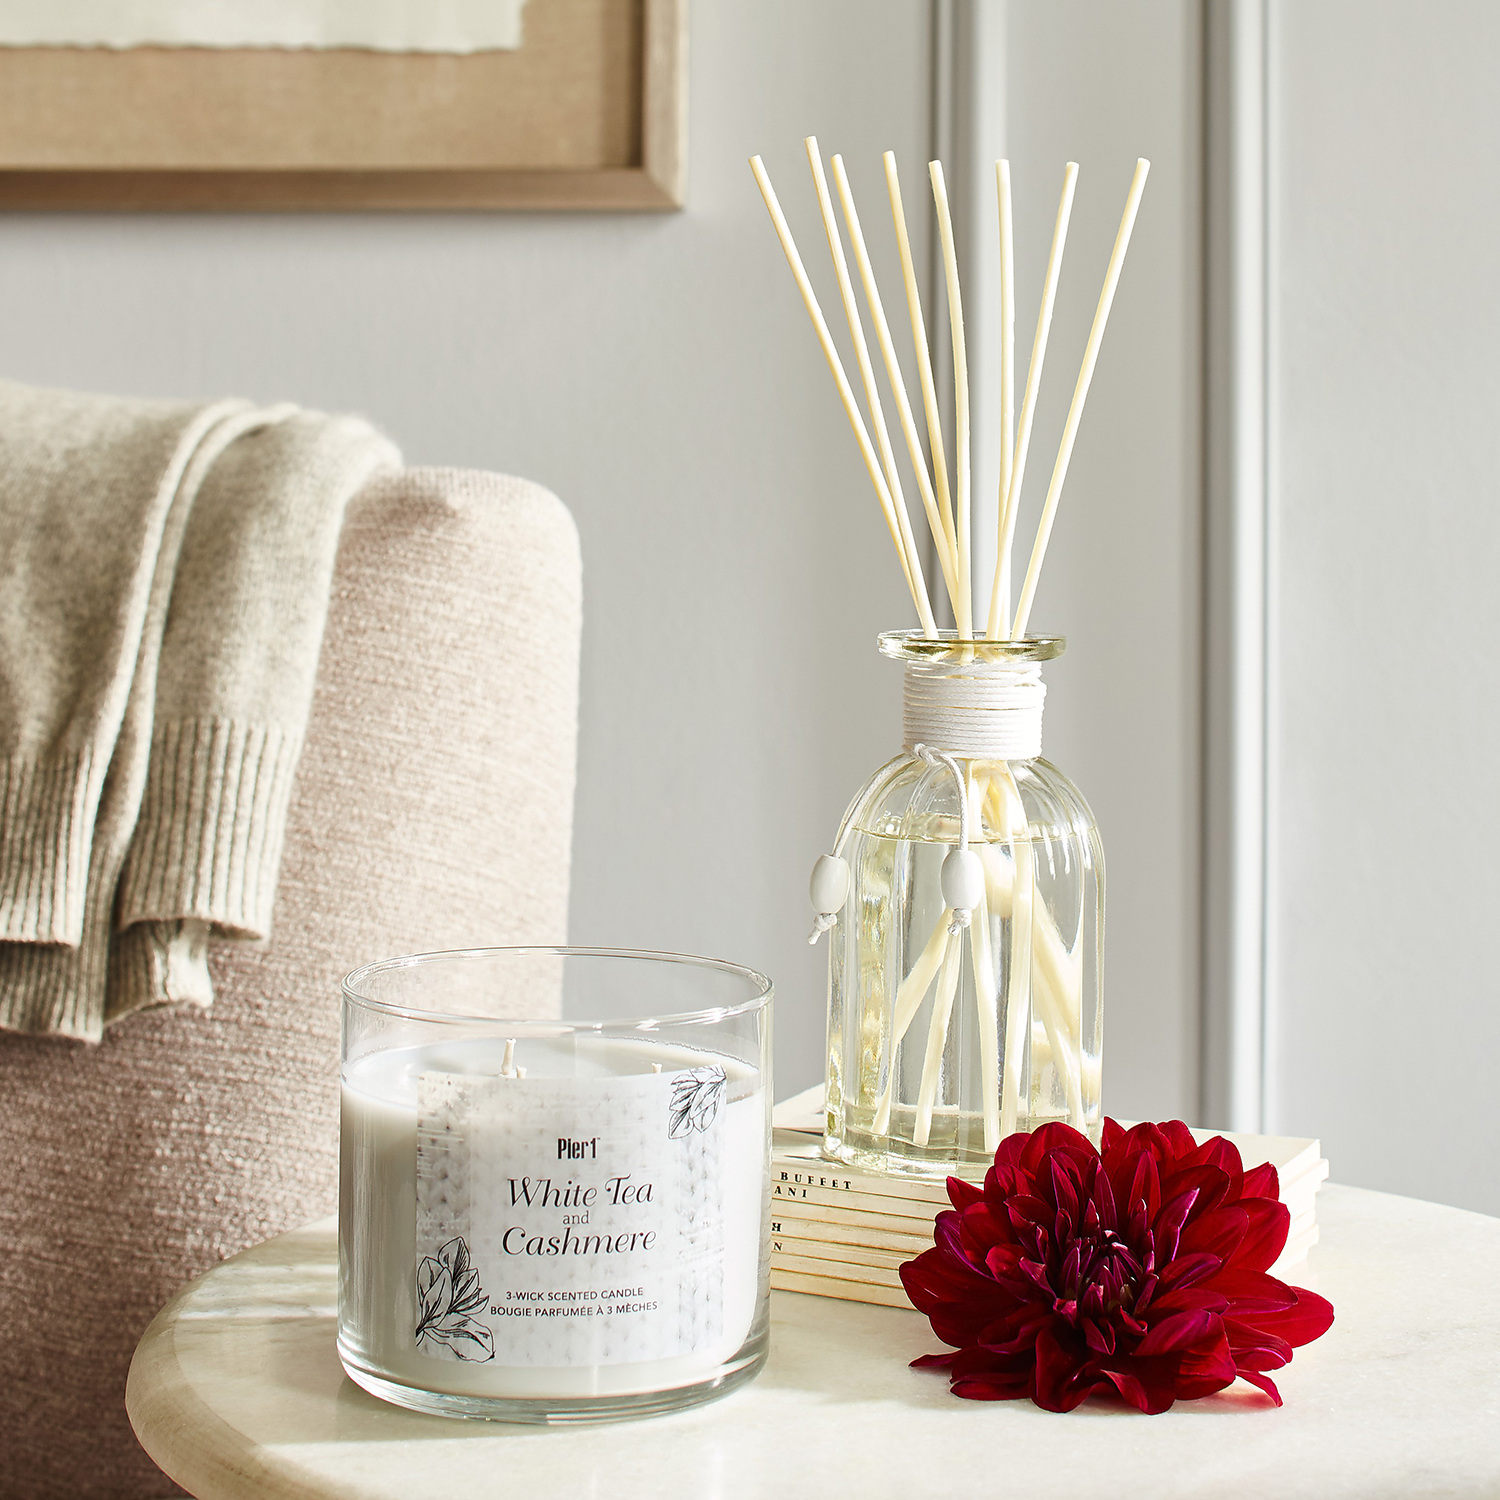 White Tea & Cashmere Filled 3-Wick Candle